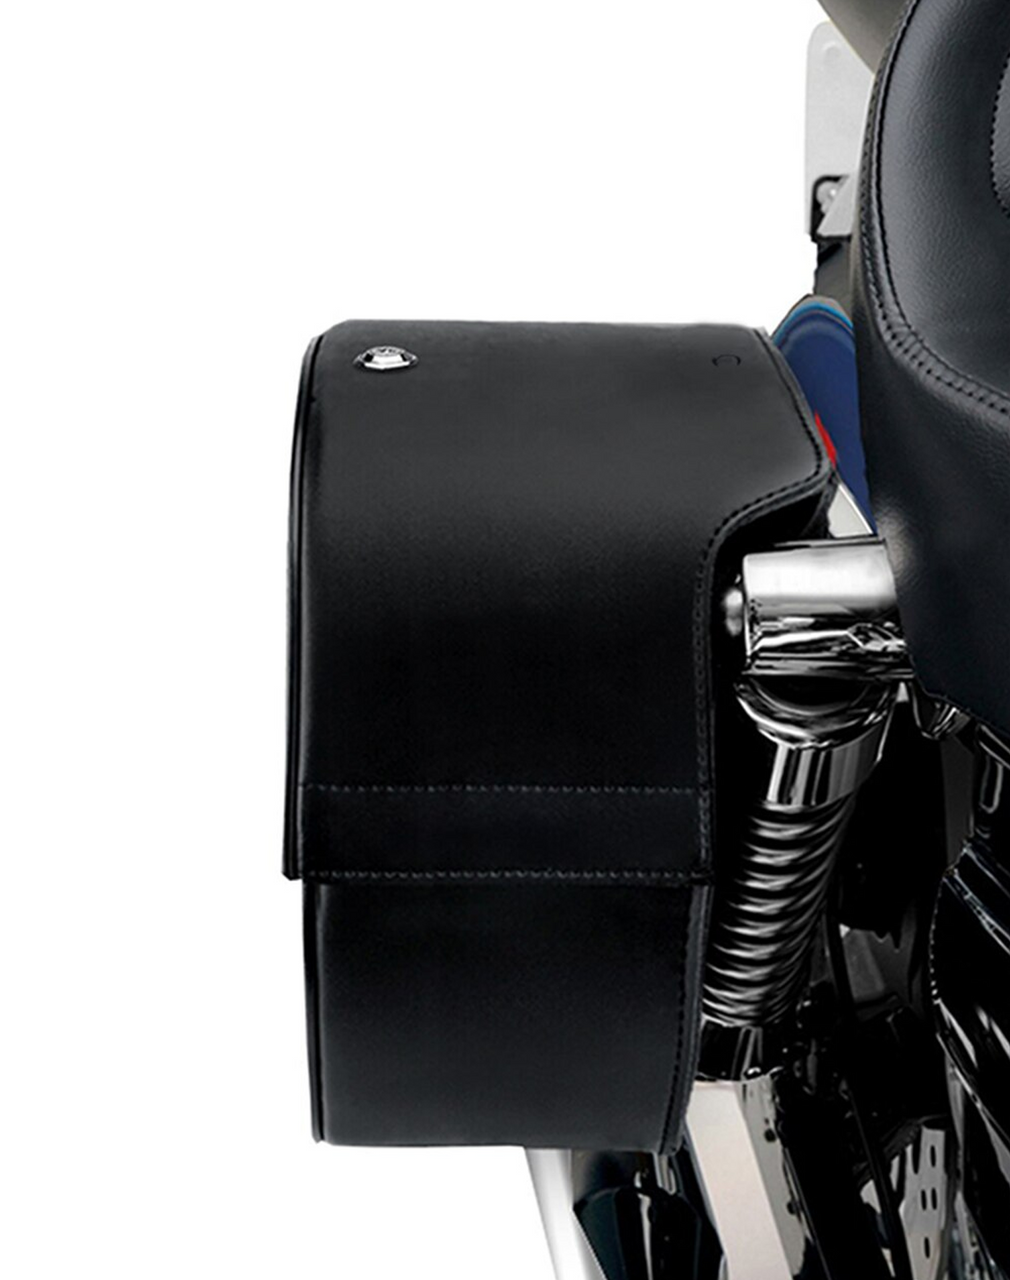 Viking Large Single Strap Shock Cutout Slanted Motorcycle Saddlebags For Harley Sportster 1200 Nightster XL1200N Shock cutout view